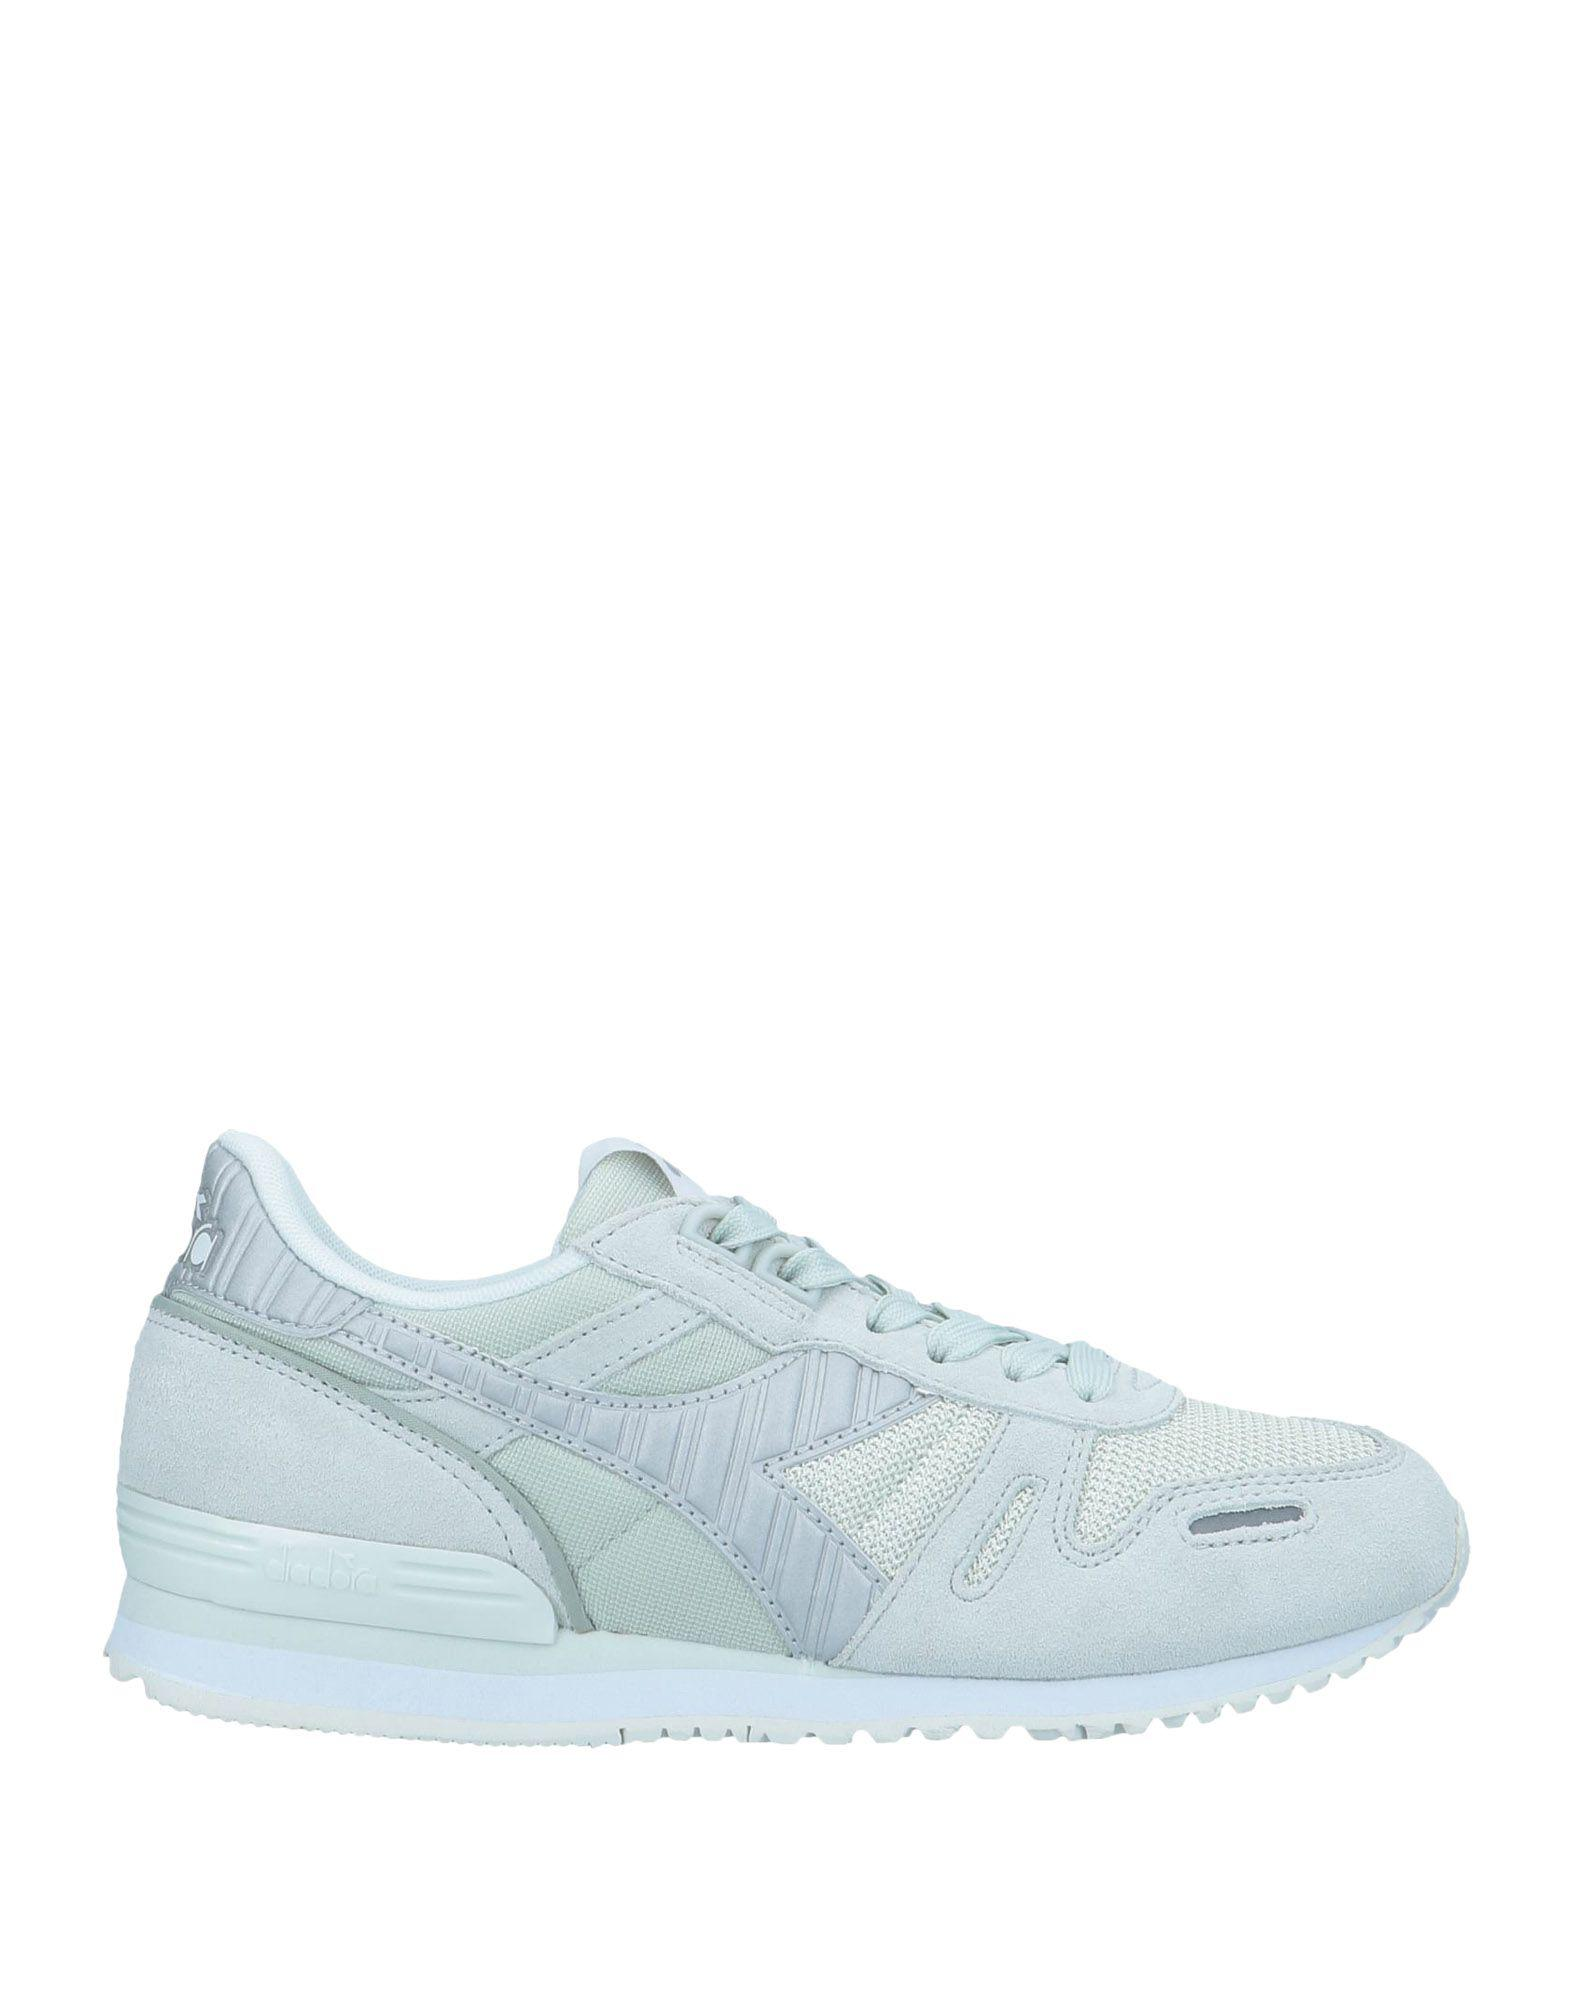 Lyst Diadora Low tops & Sneakers in Green Save 10%